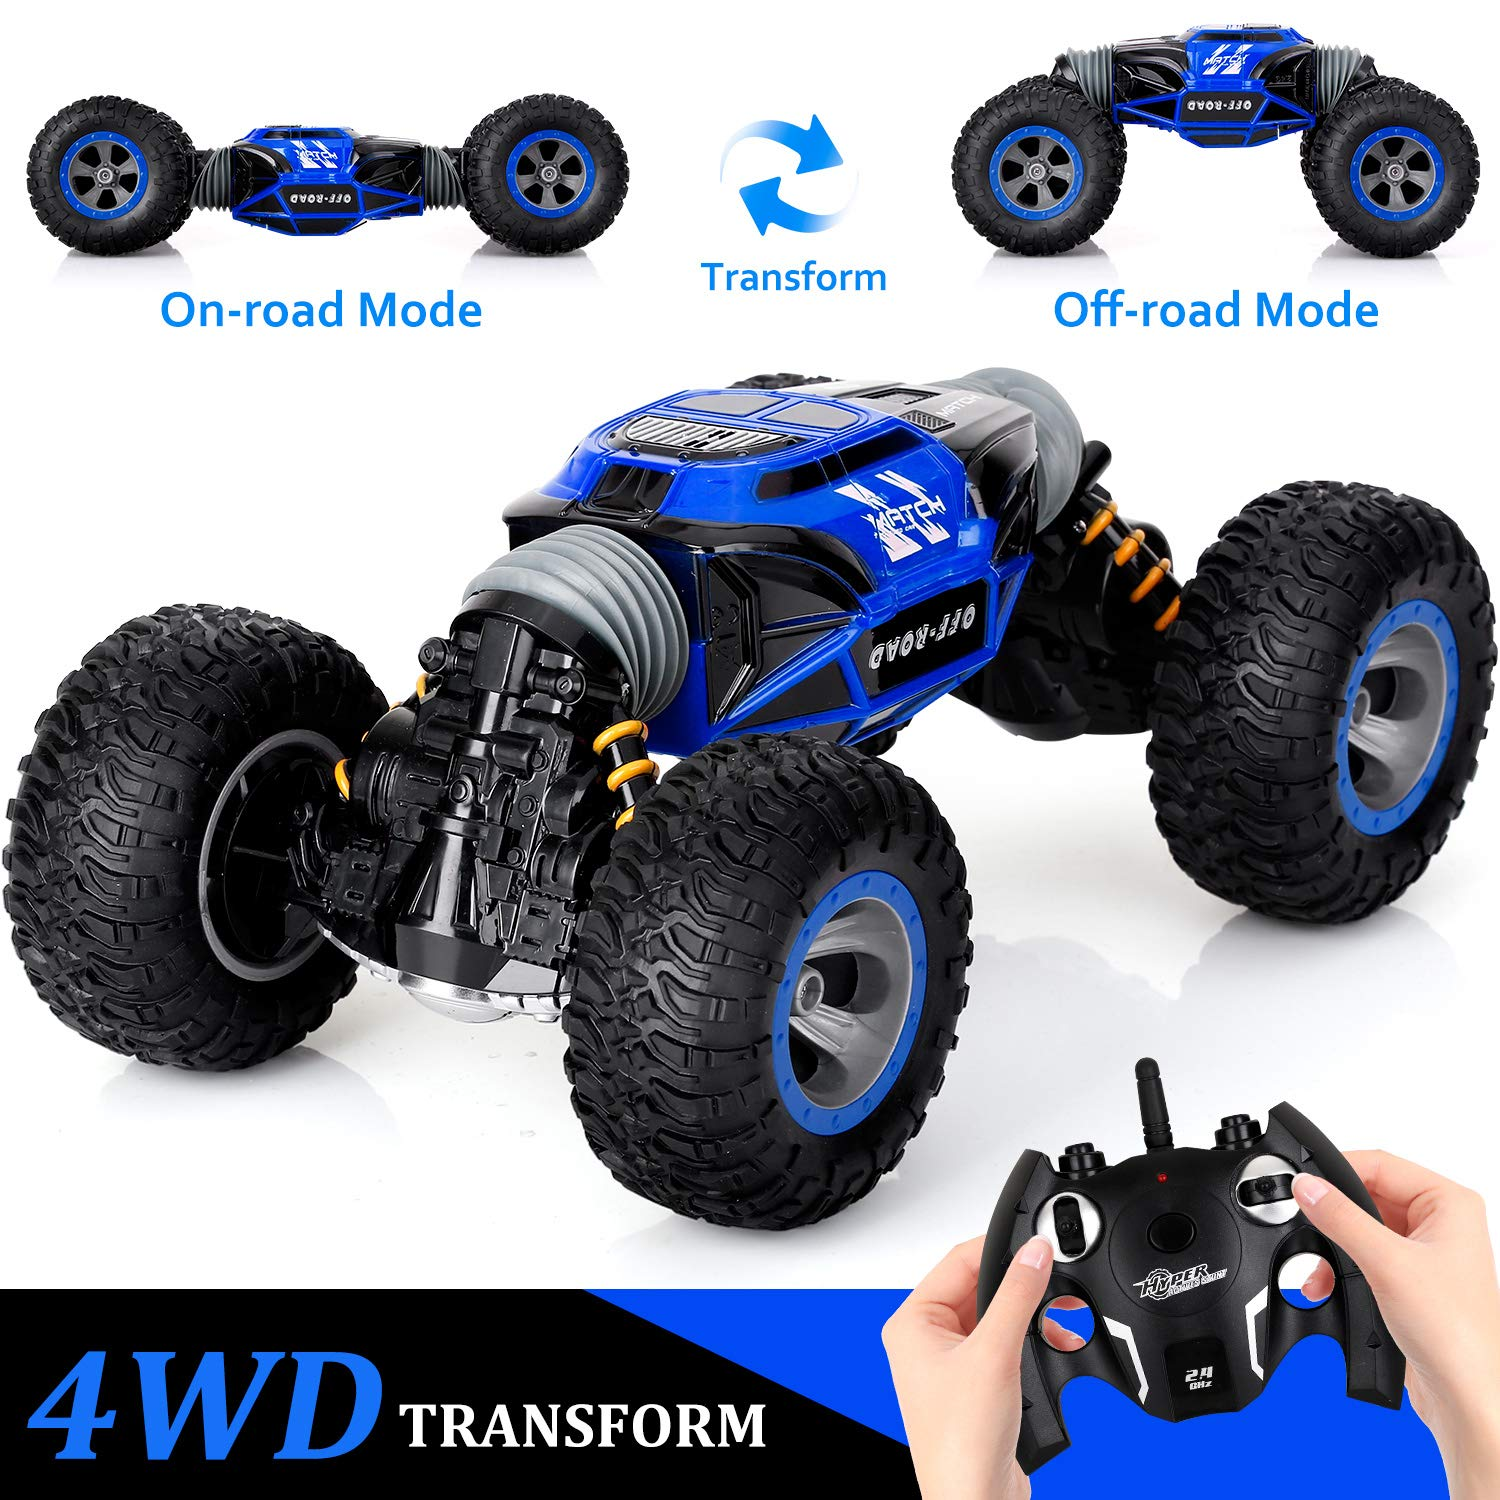 KingsDragon Remote Control Car,2.4GHZ High Speed Stunt RC Racing Cars RC Rock Crawler w/ Rechargeable Batteries,Indoor Outdoor Motors Vehicles Buggy Hobby Car Toy Gifts for Kids Boys Girls Adults-Blue